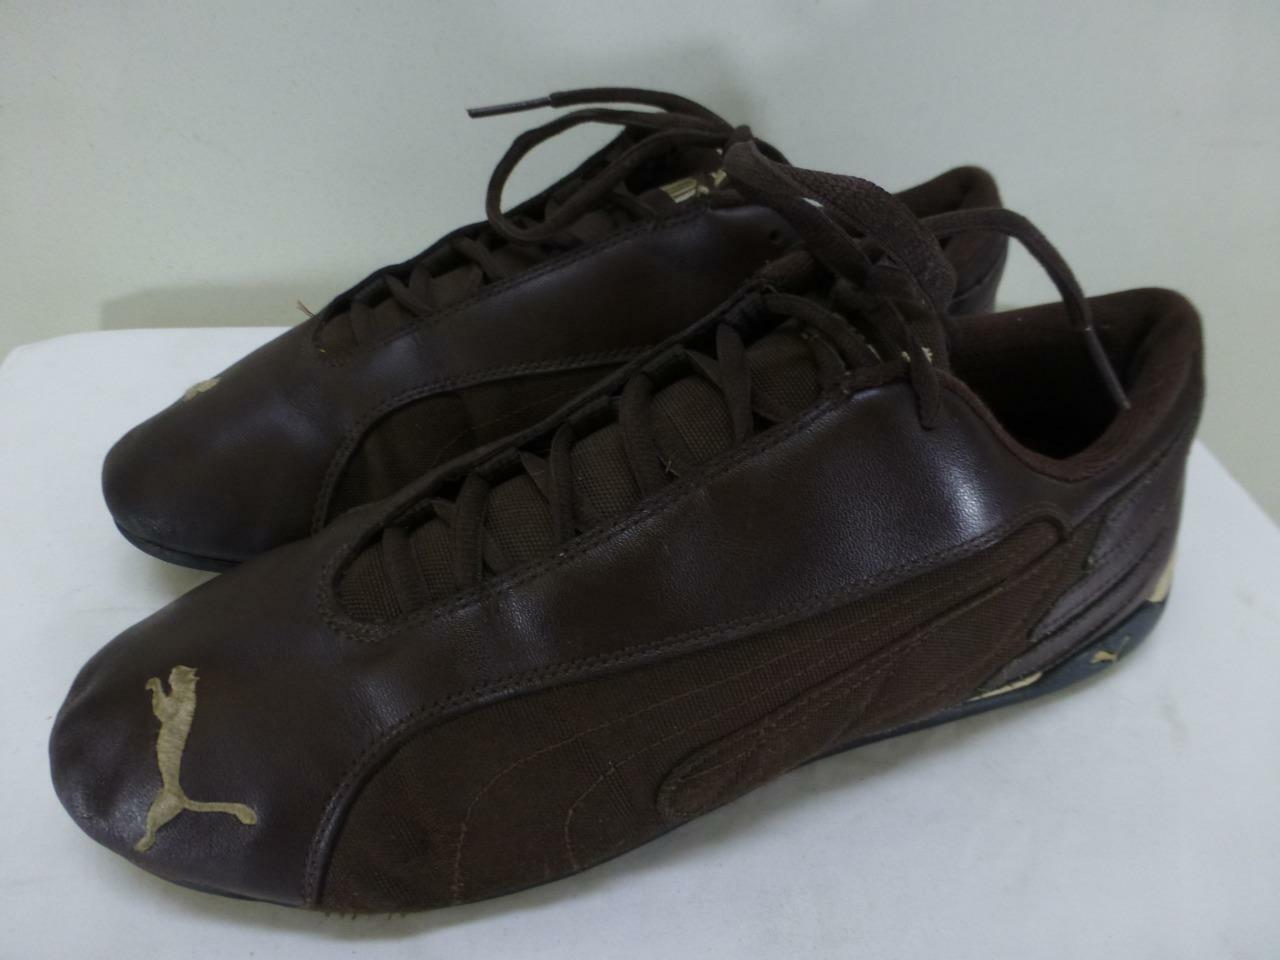 PUMA Replica Cat Low Motorsports brown leather sneakers shoes mens sz 12 46